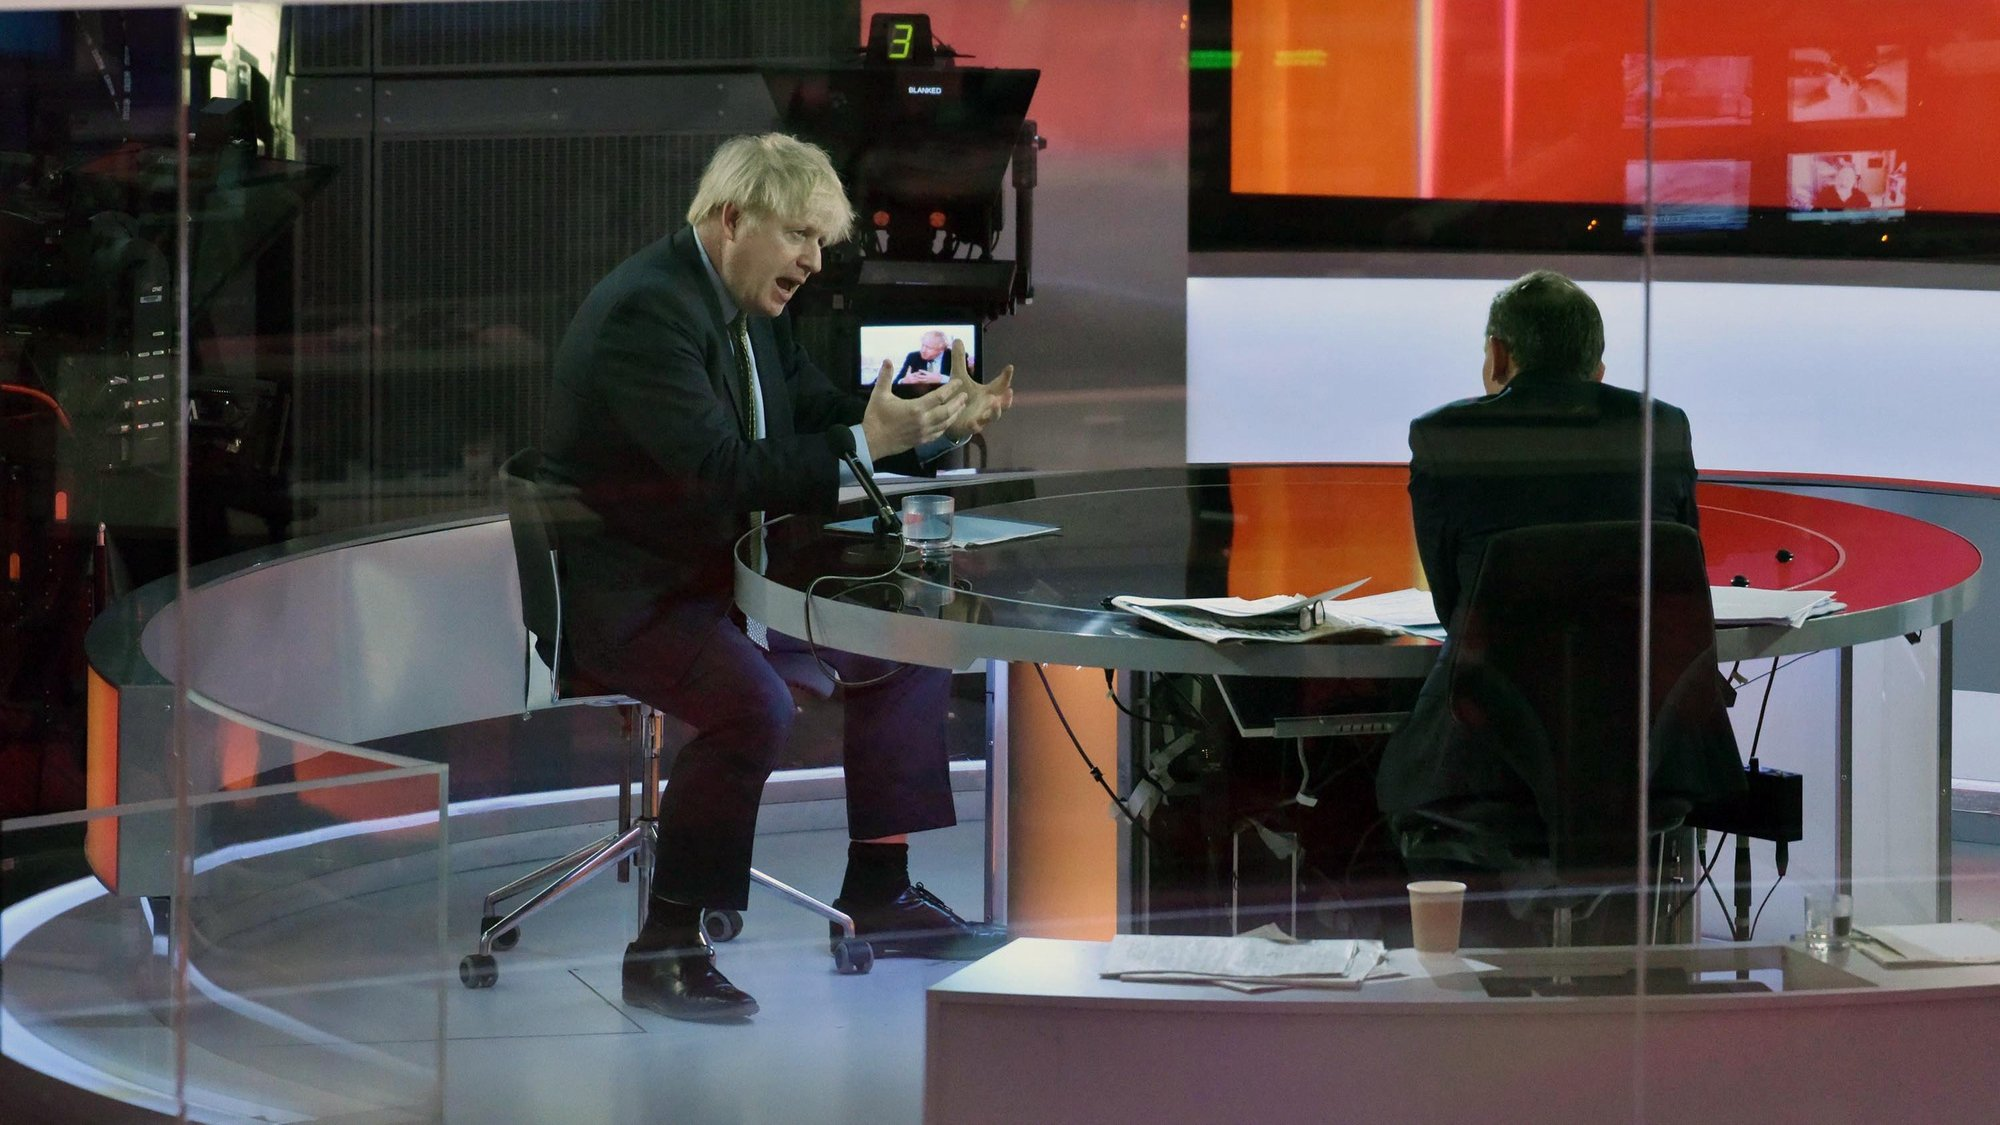 epa08916423 A handout photo made available by the British Broadcasting Corporation (BBC) shows Britain's Prime Minister Boris Johnson appearing at the Andrew Marr show in the BBC studios in London, Britain, 03 January 2021. Johnson said during the interview that Boris Johnson told the BBC that Britain may be facing tougher measures in weeks ahead as the nation battles the ongoing COVID-19 coronavirus pandemic.  EPA/JEFF OVERS HANDOUT ATTENTION EDITORS: PICTURE TAKEN THROUGH GLASS HANDOUT EDITORIAL USE ONLY/NO SALES